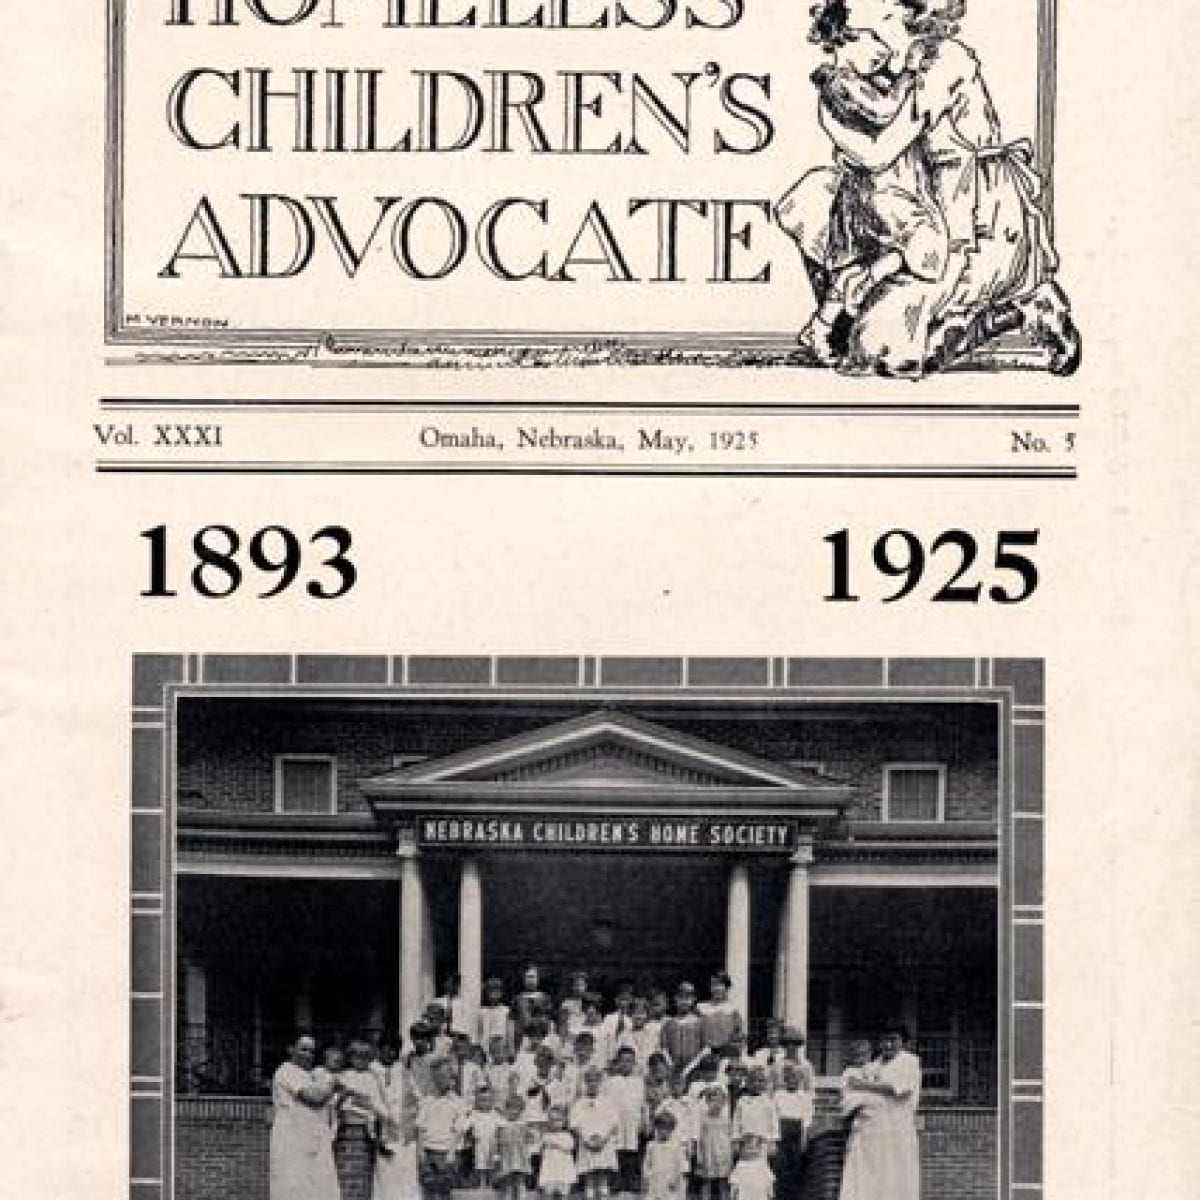 1896 – The Advocate magazine publication created